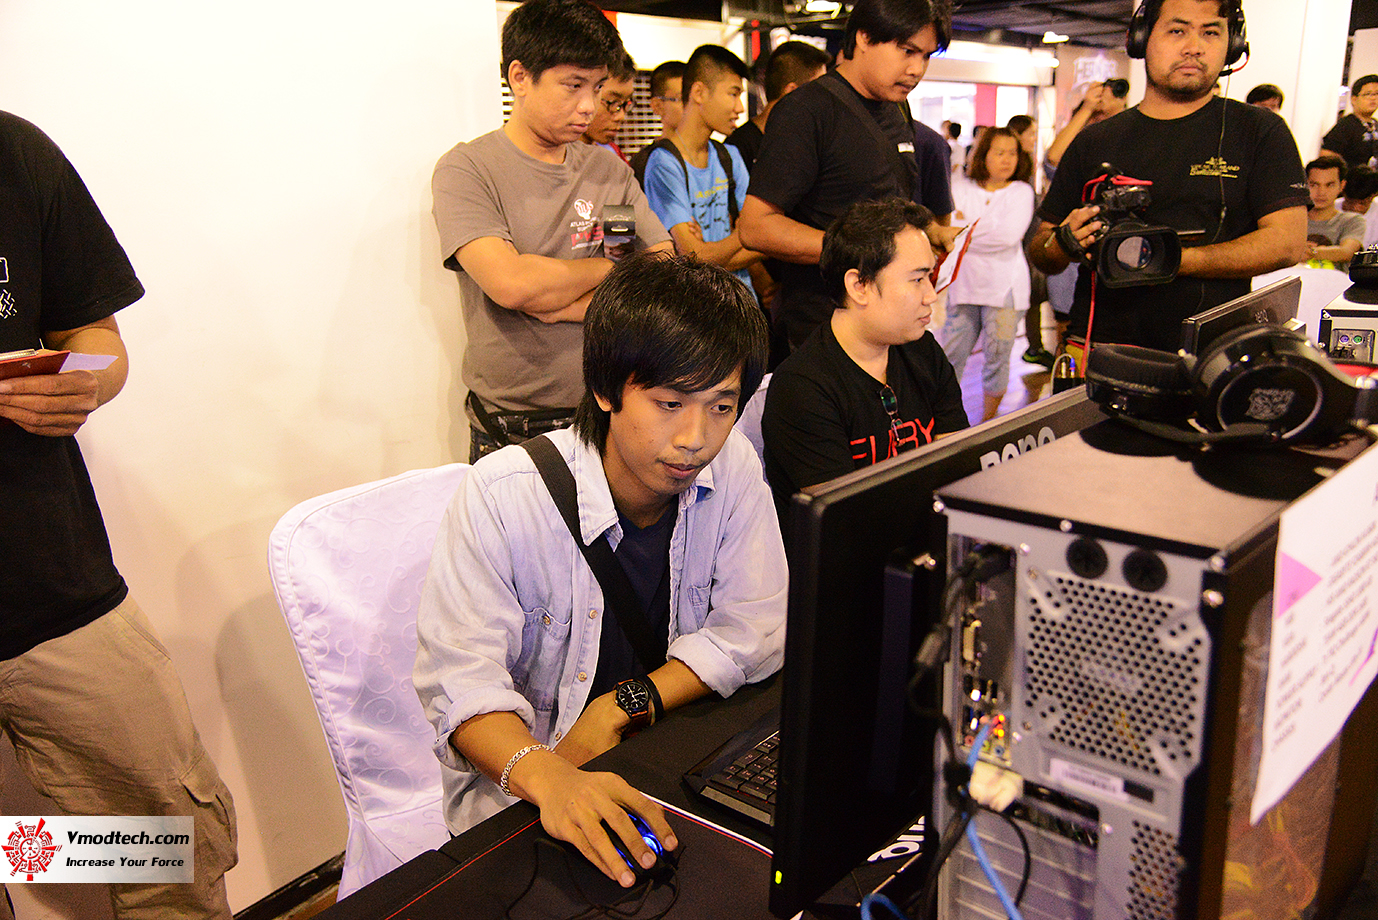 dsc 6677 AMD OMG! Party 2015 (AMD Overclock Modding Gaming Party 2015)